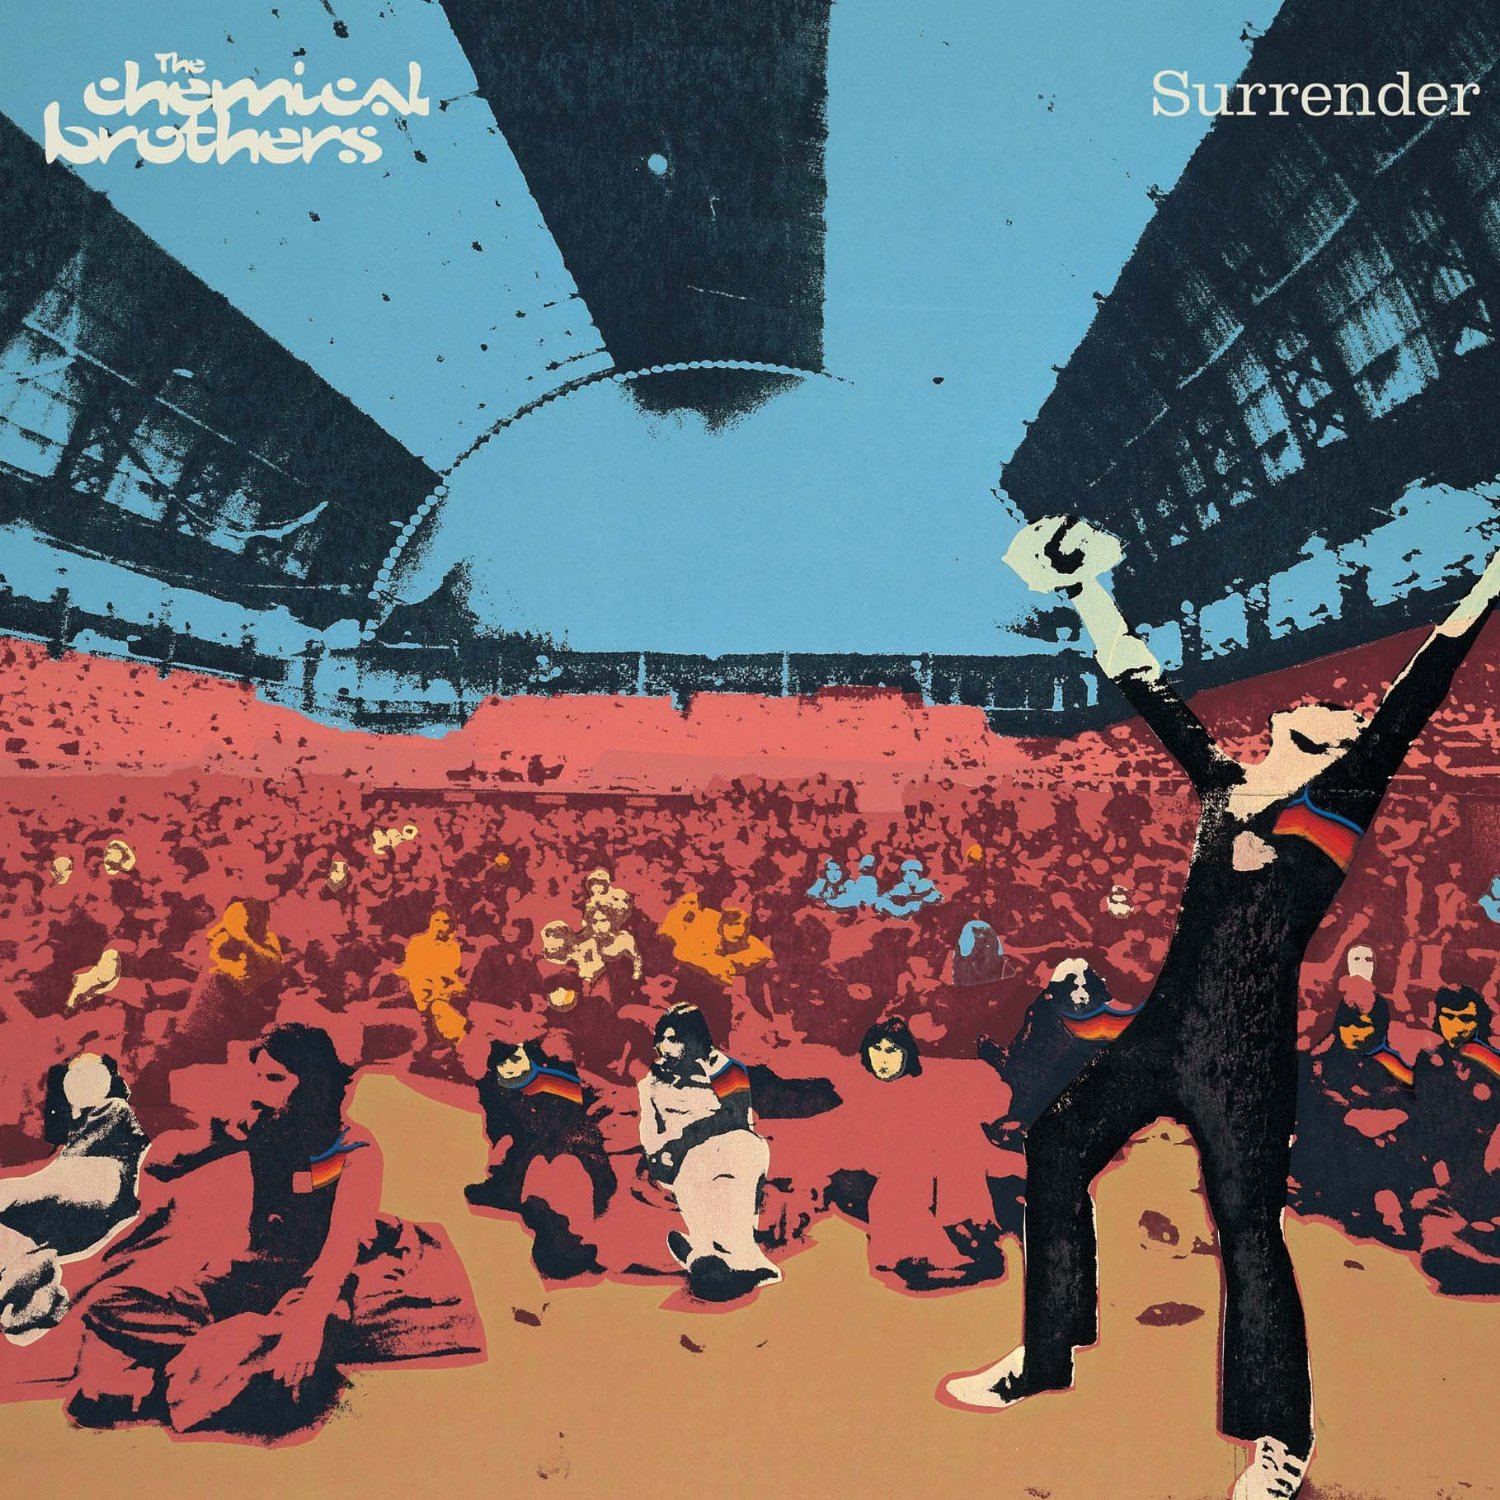 The Chemical Brothers - Surrender [2xLP]